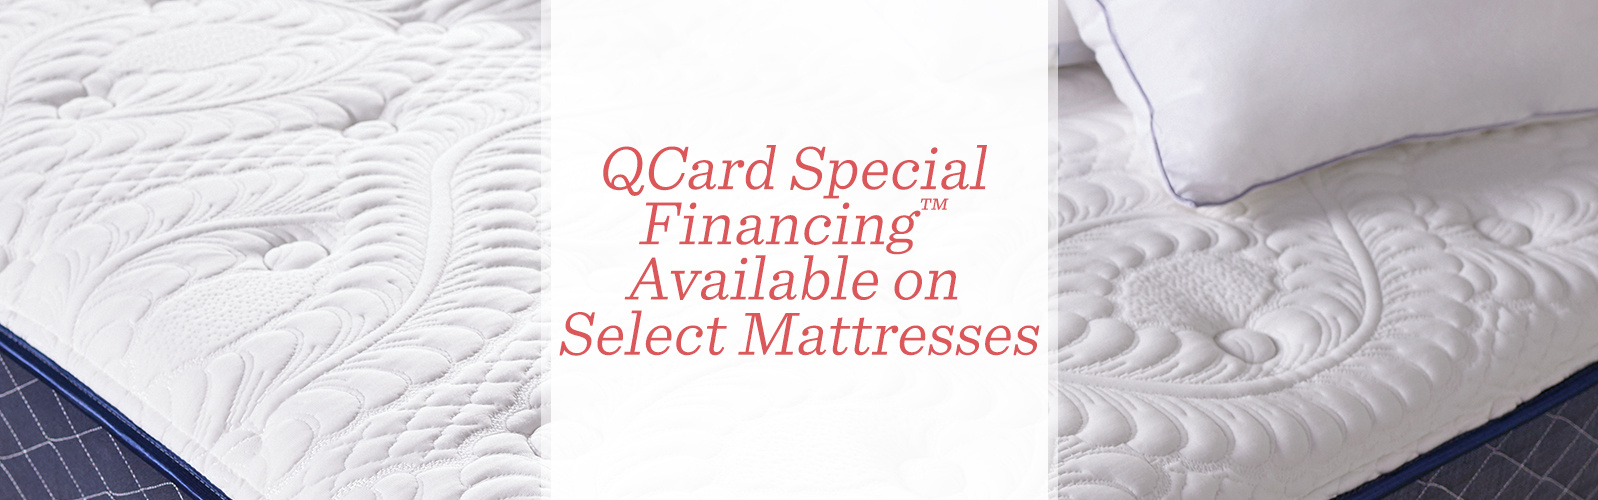 QCard Special Financing™ Available on Select Mattresses